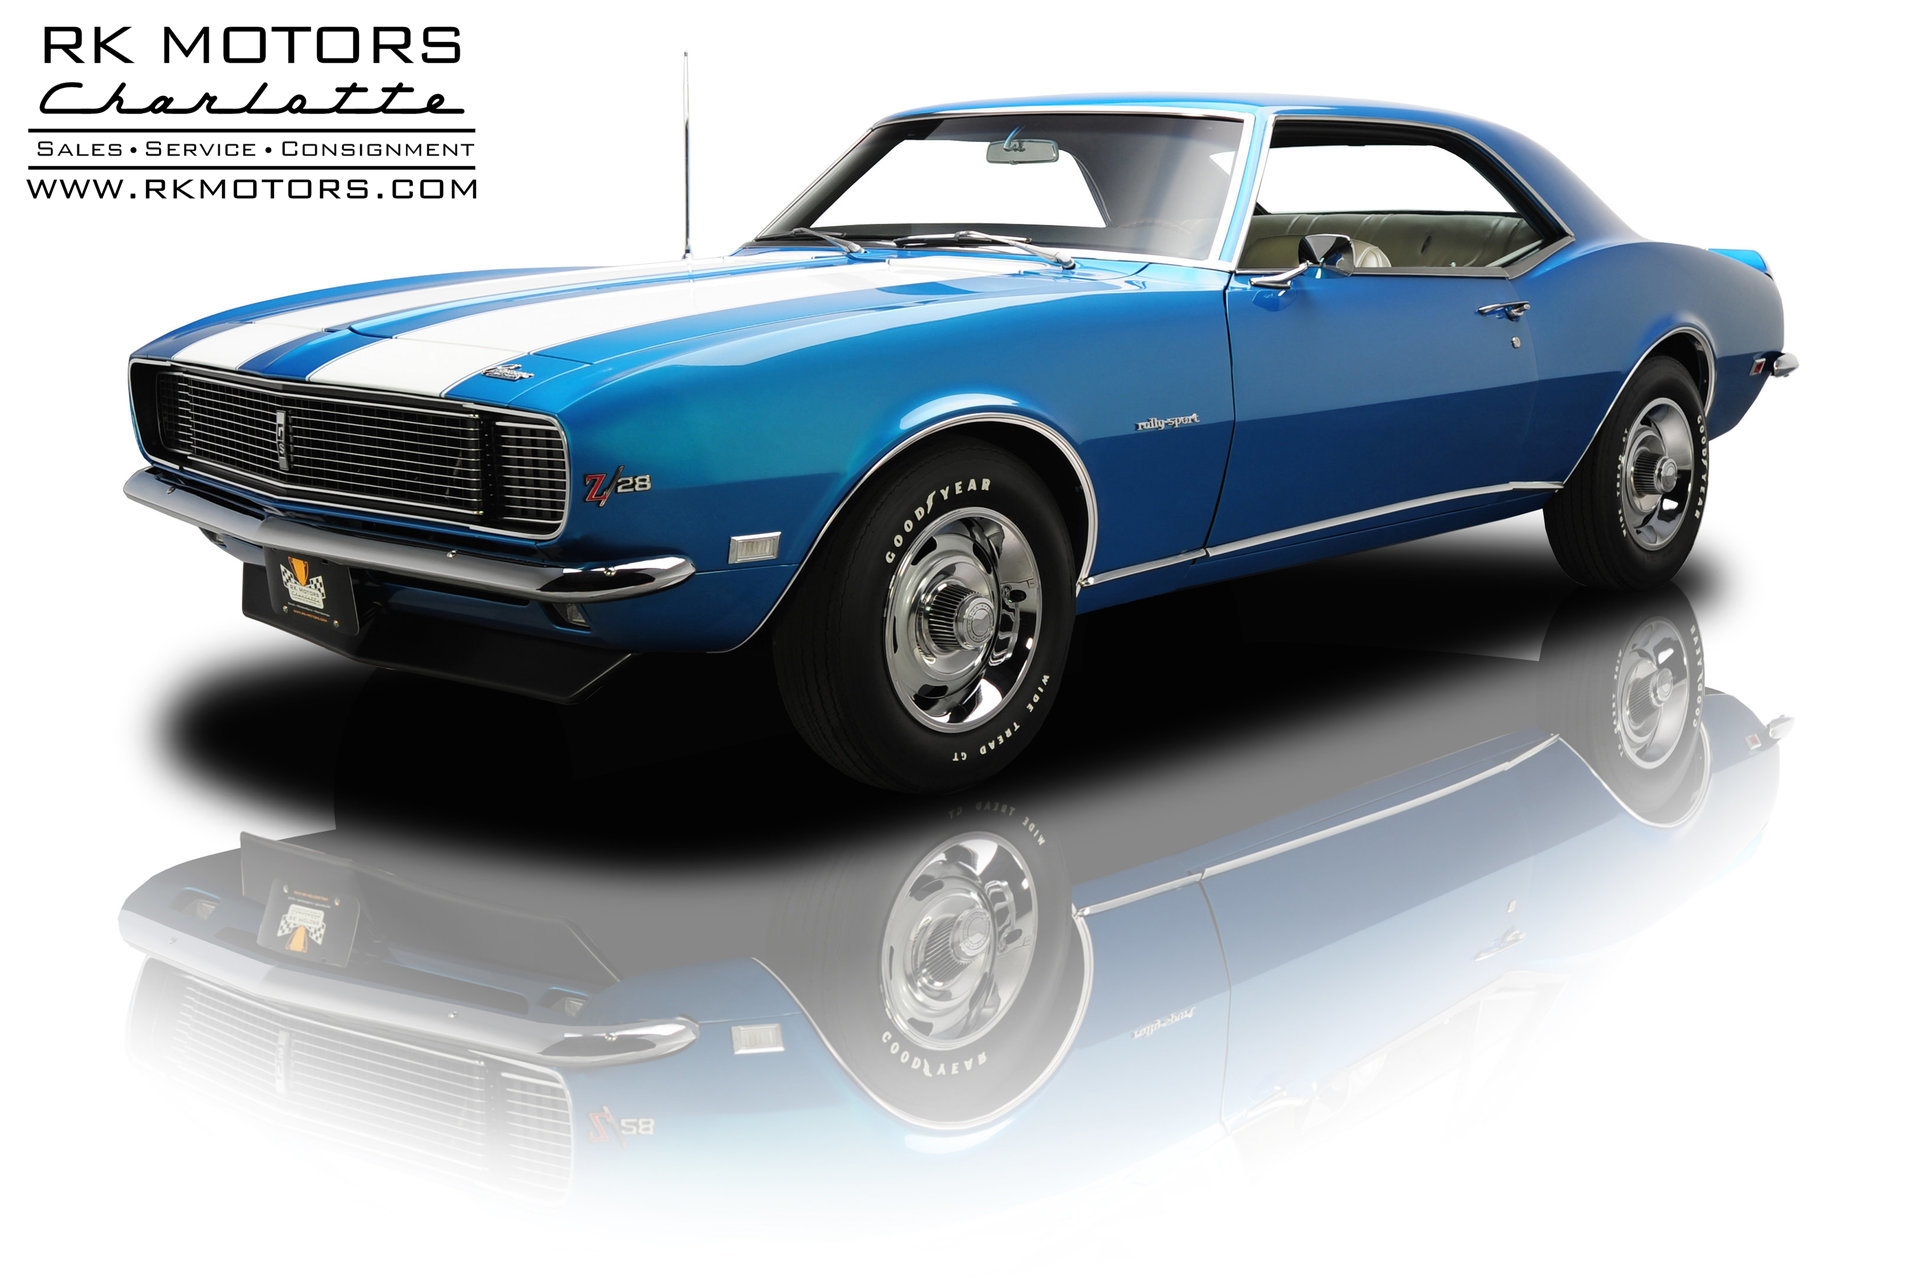 133097 1968 Chevrolet Camaro Rk Motors Classic Cars For Sale Tic Toc Tach Wiring Diagram Frame Up Restored Z 28 Rally Sport 302 4 Speed